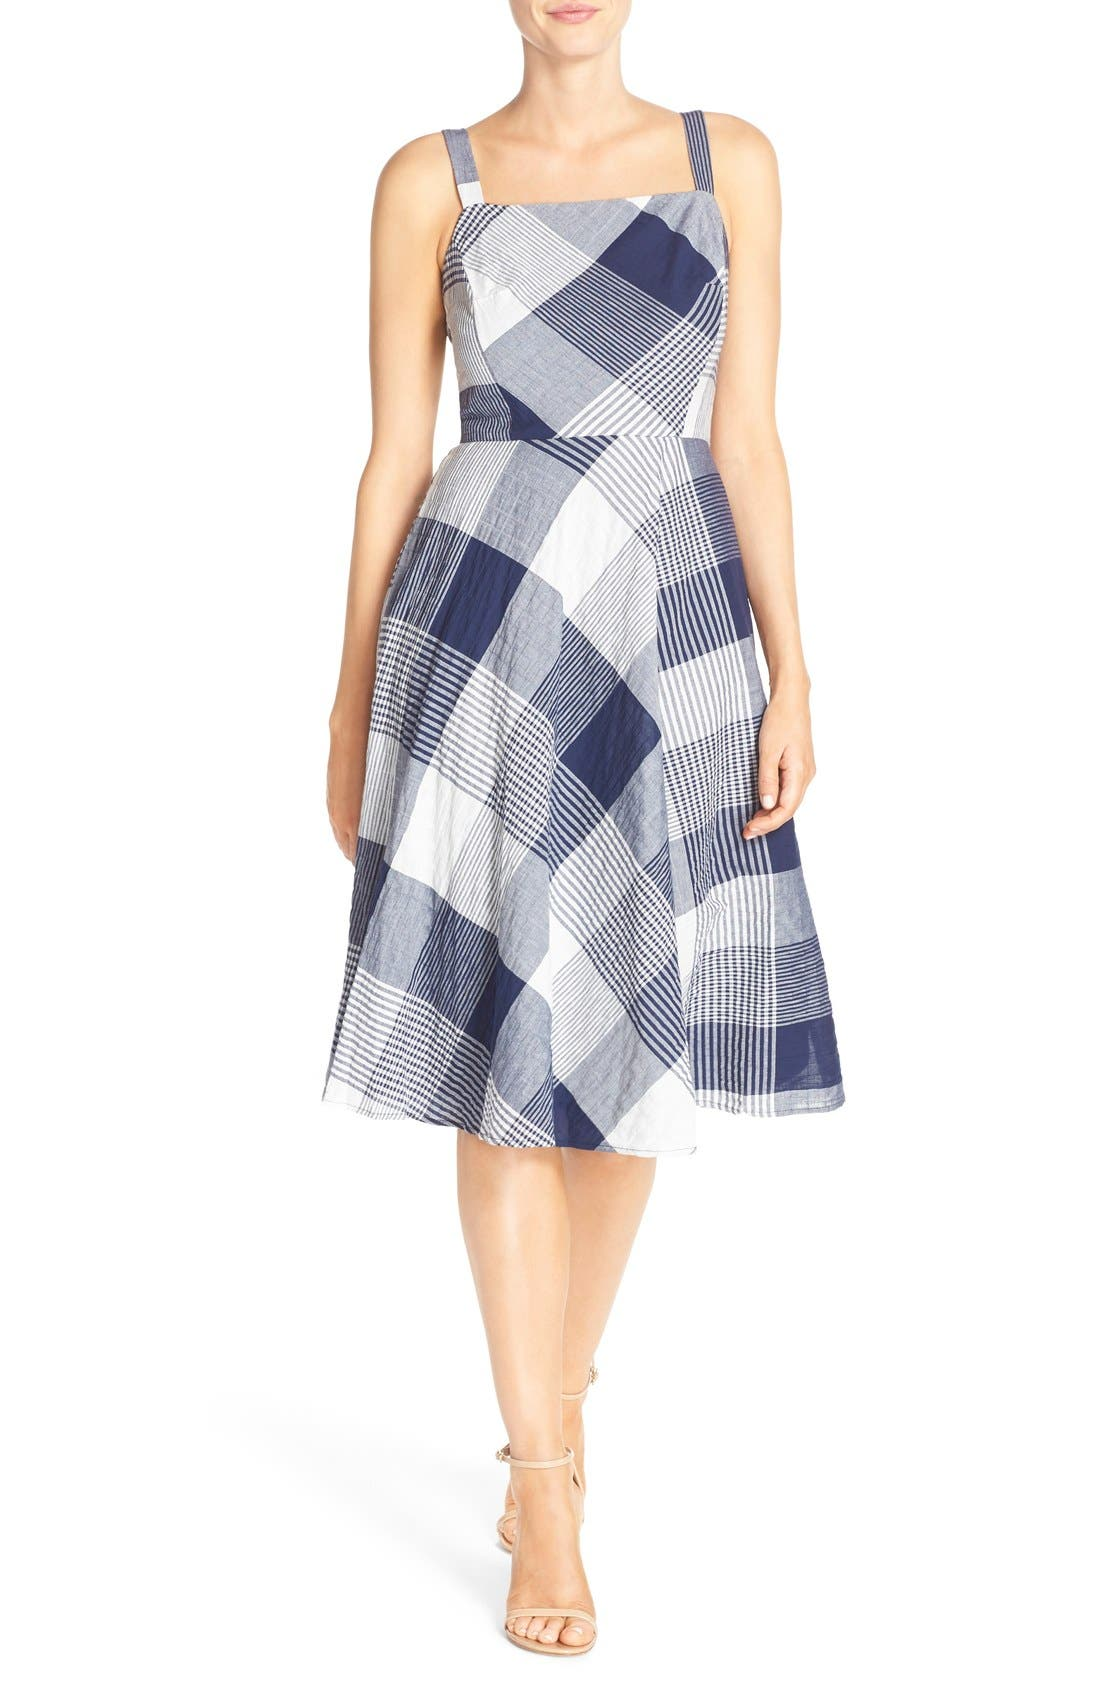 Main Image - Taylor Dresses Check Stretch Cotton Fit & Flare Dress